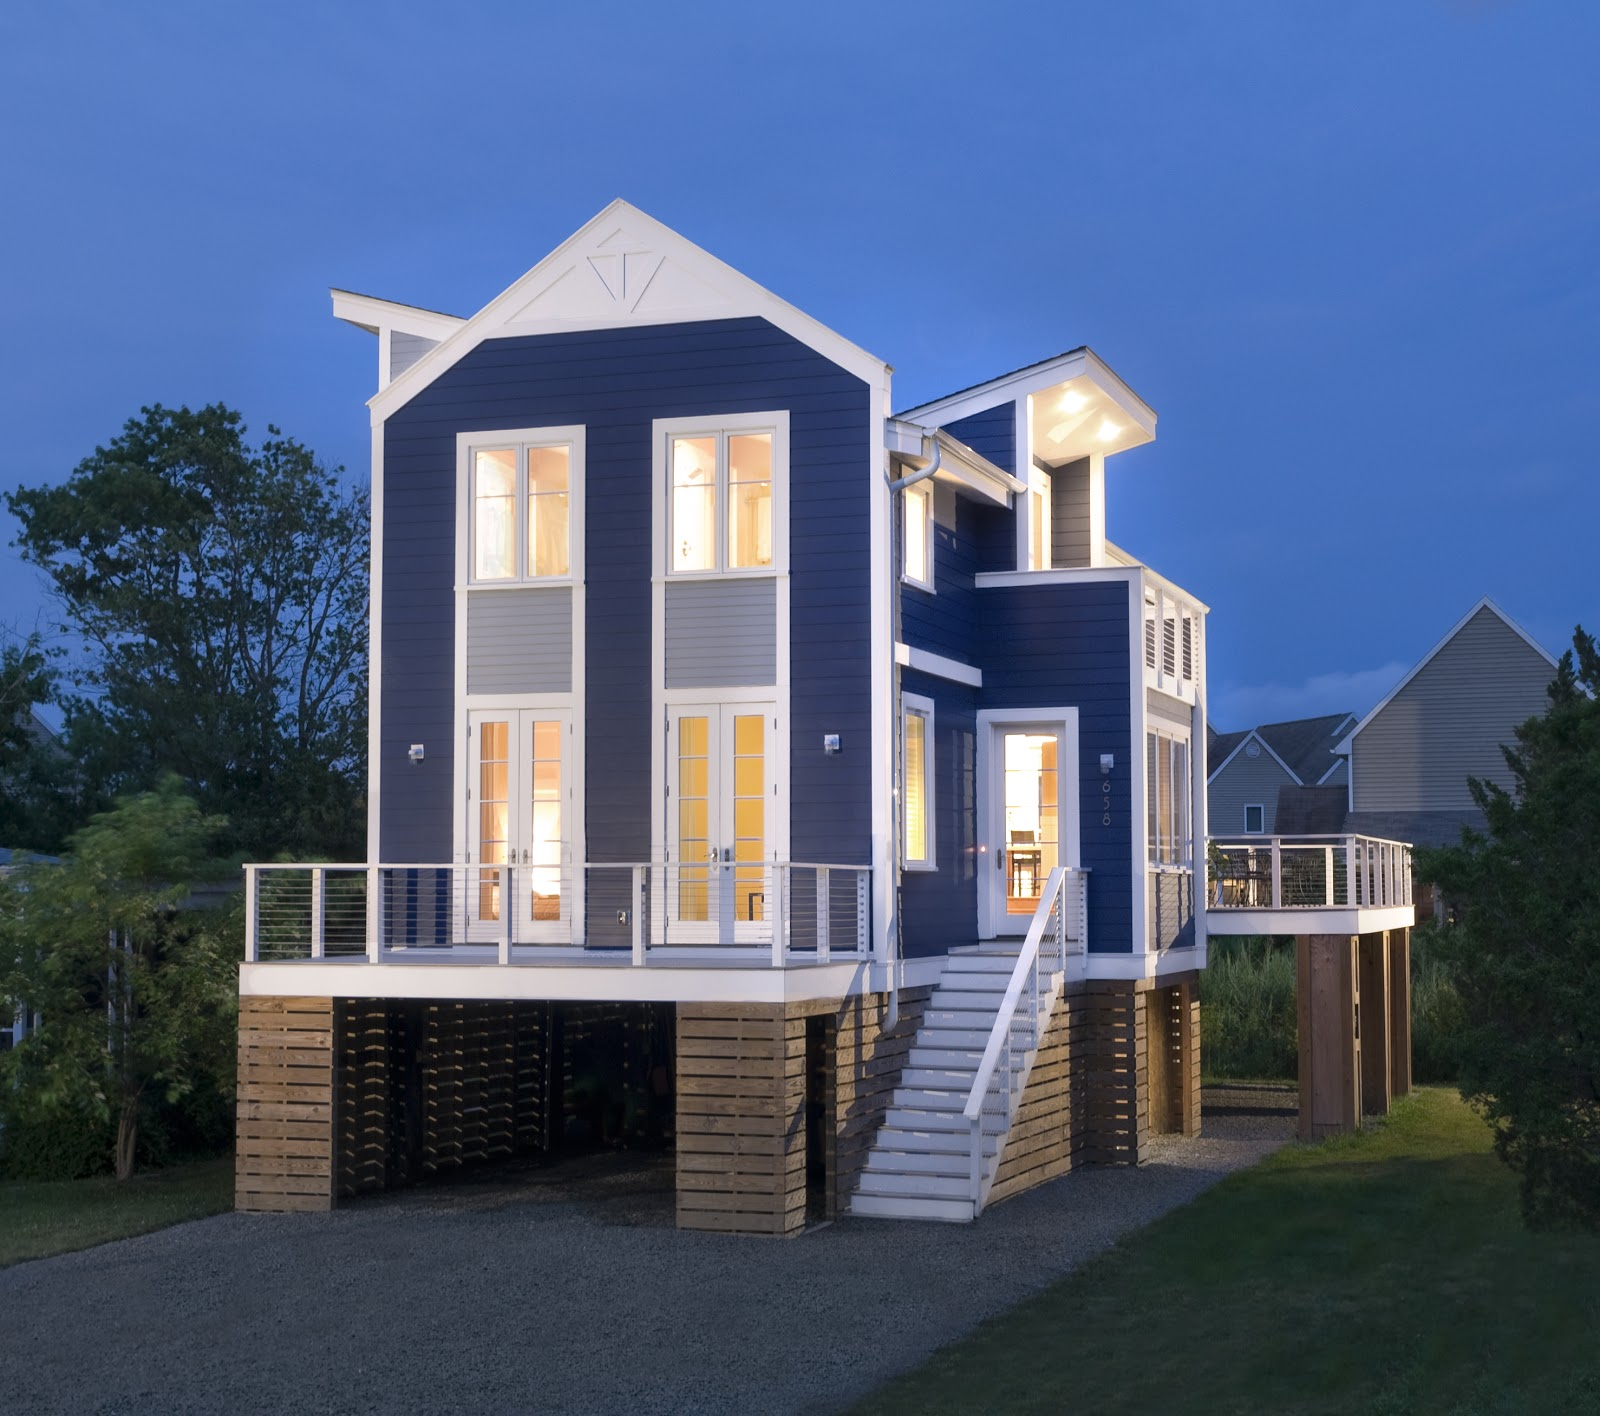 The new beach house two pretty cool houses for Awesome home design ideas